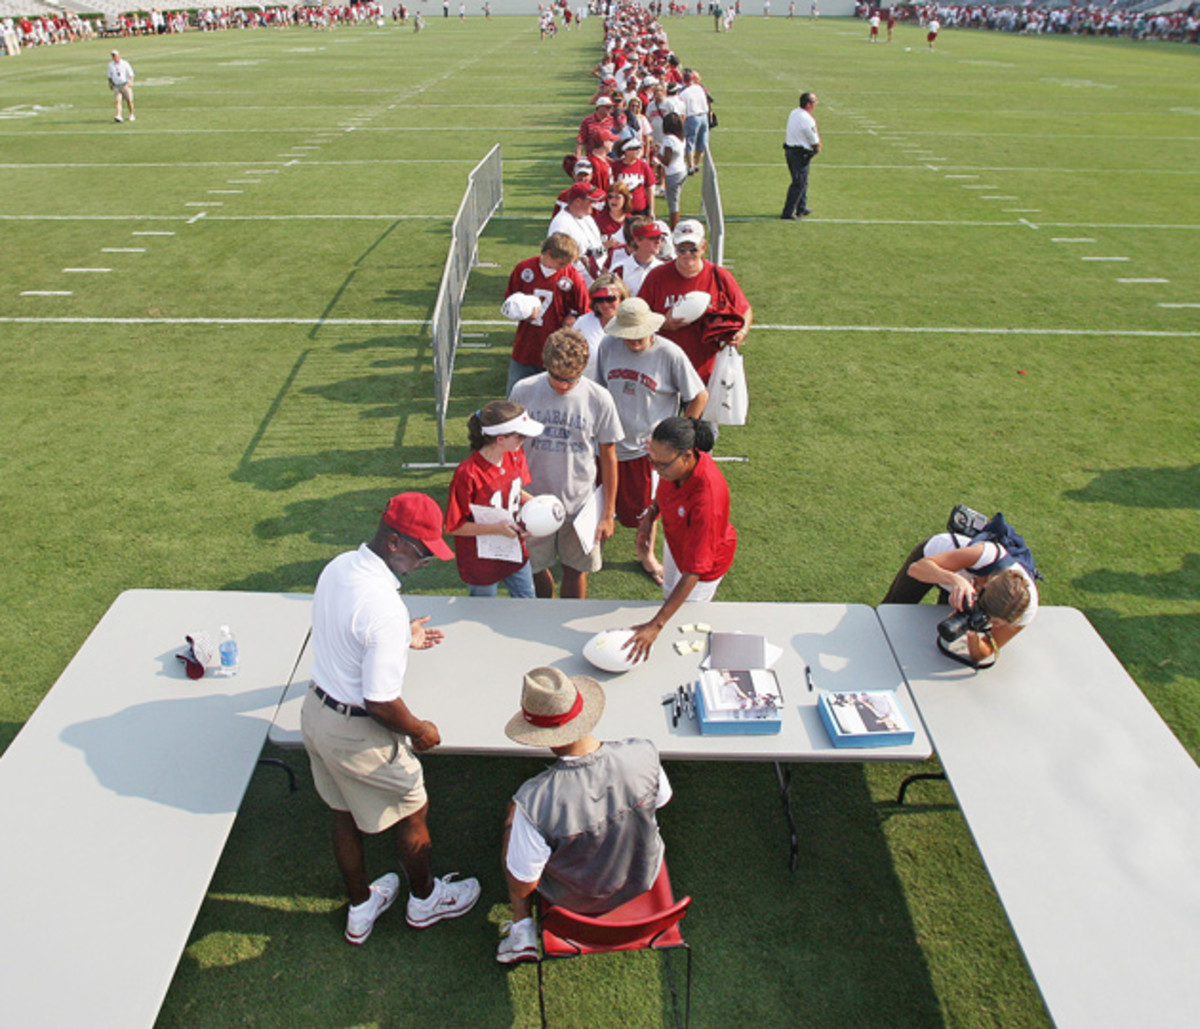 Alabama fans young and waited in line to get Saban's autograph after an early August practice.